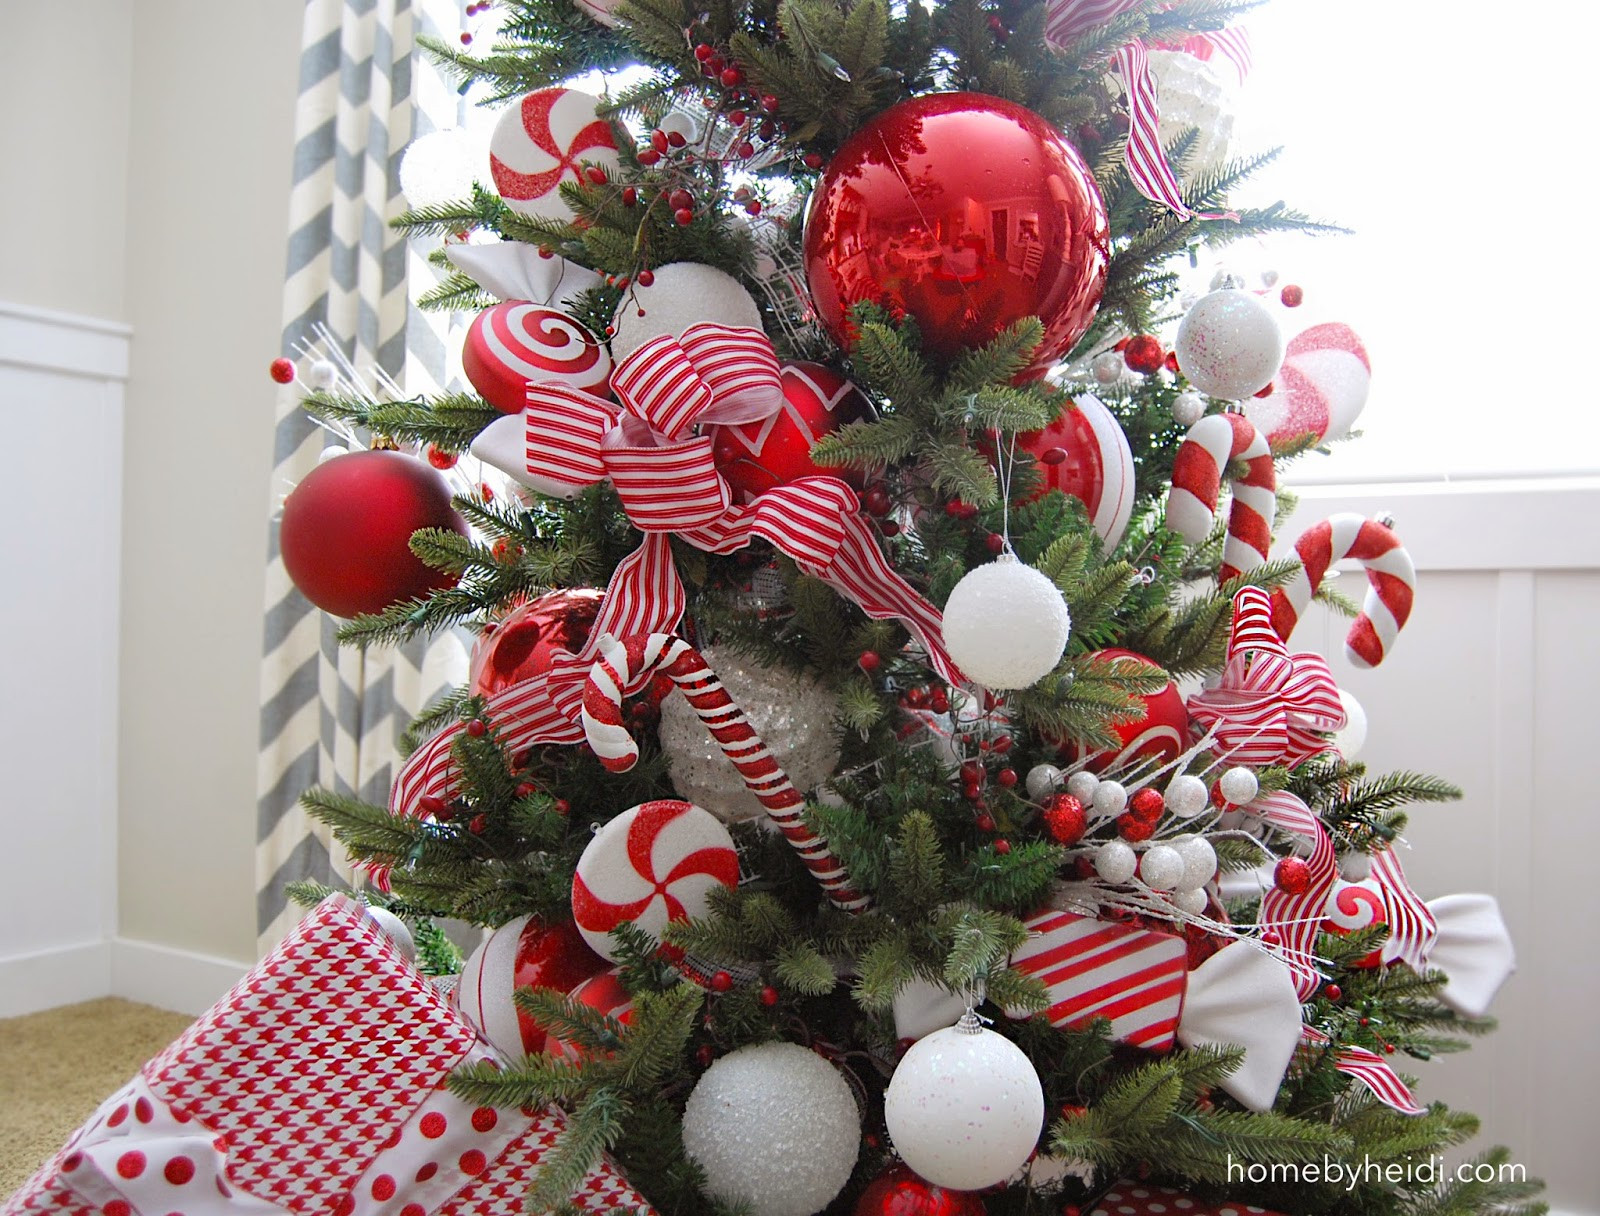 Candy Cane Christmas Tree Decorations  Home By Heidi Candy Cane Christmas Tree